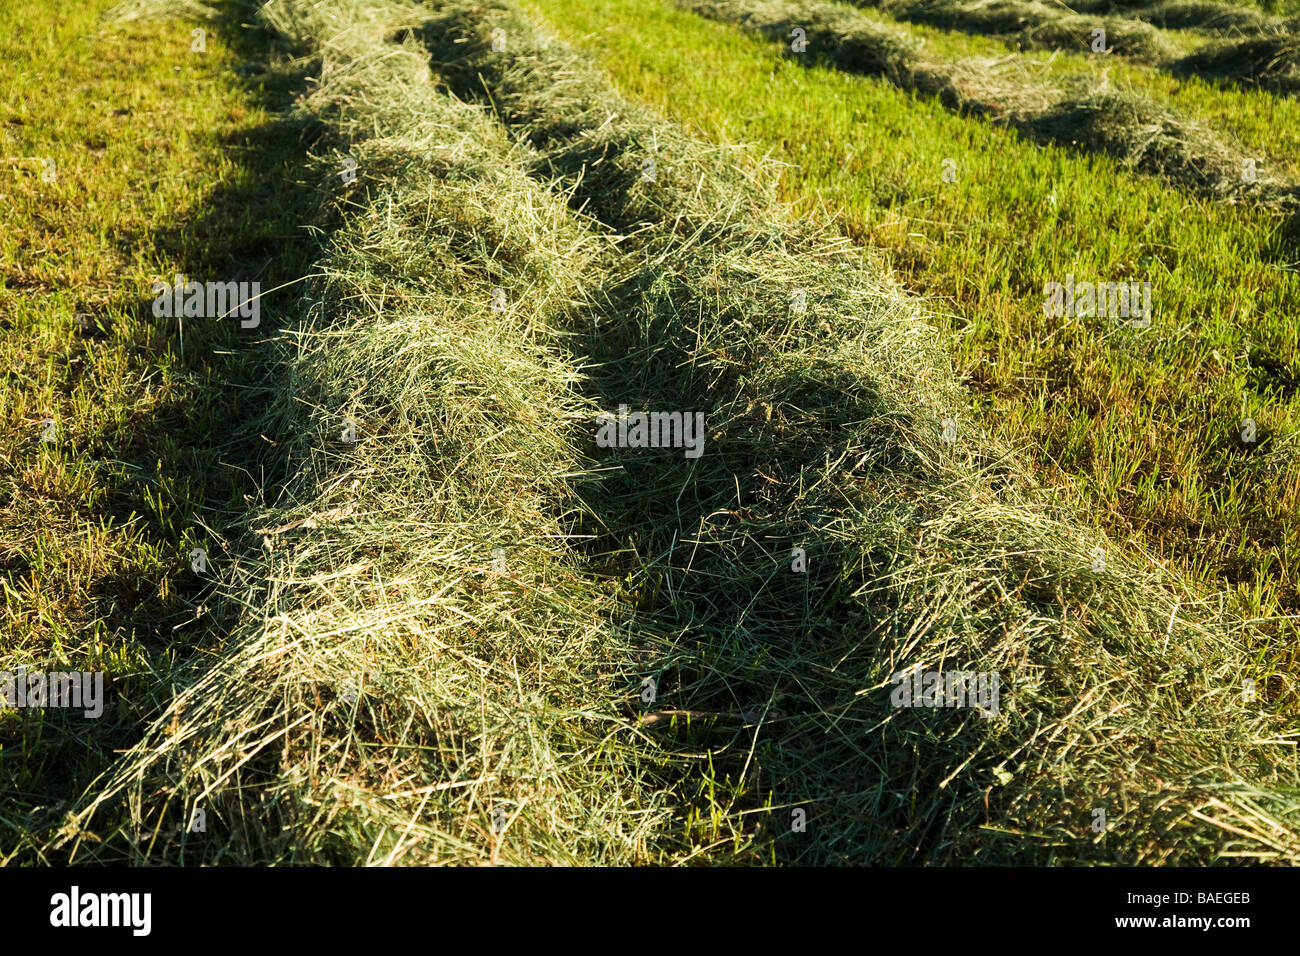 ILLINOIS DeKalb Freshly mowed hay raked into rows in agricultural field - Stock Image